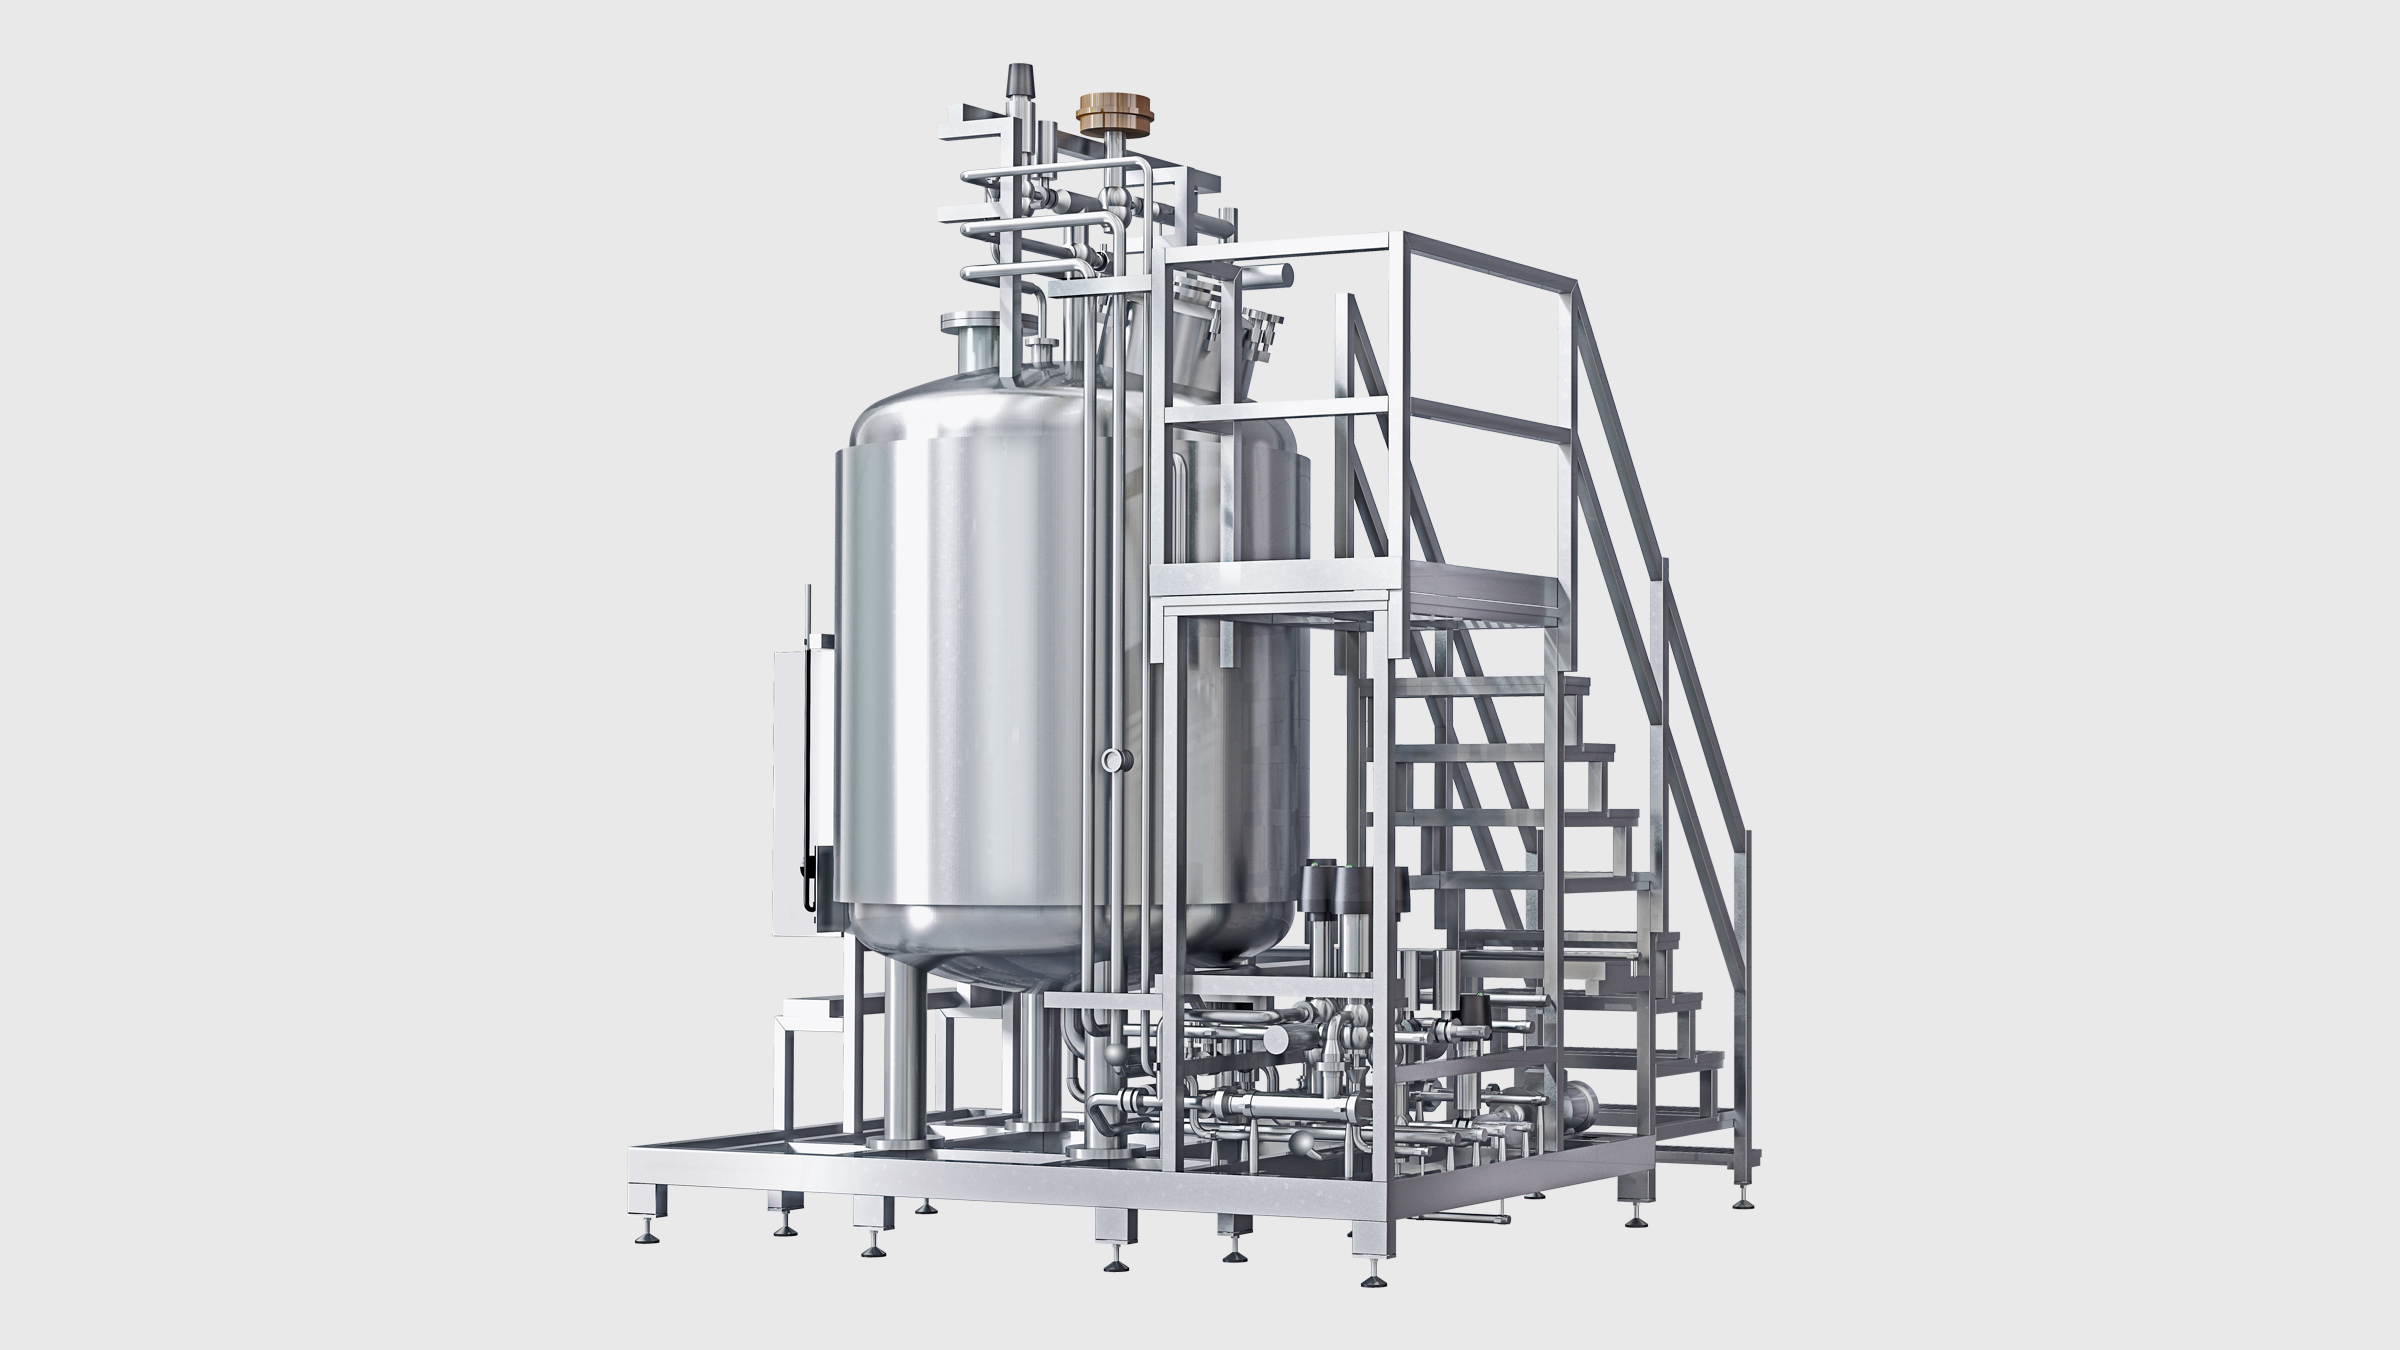 Process units for the cold block area of your brewery